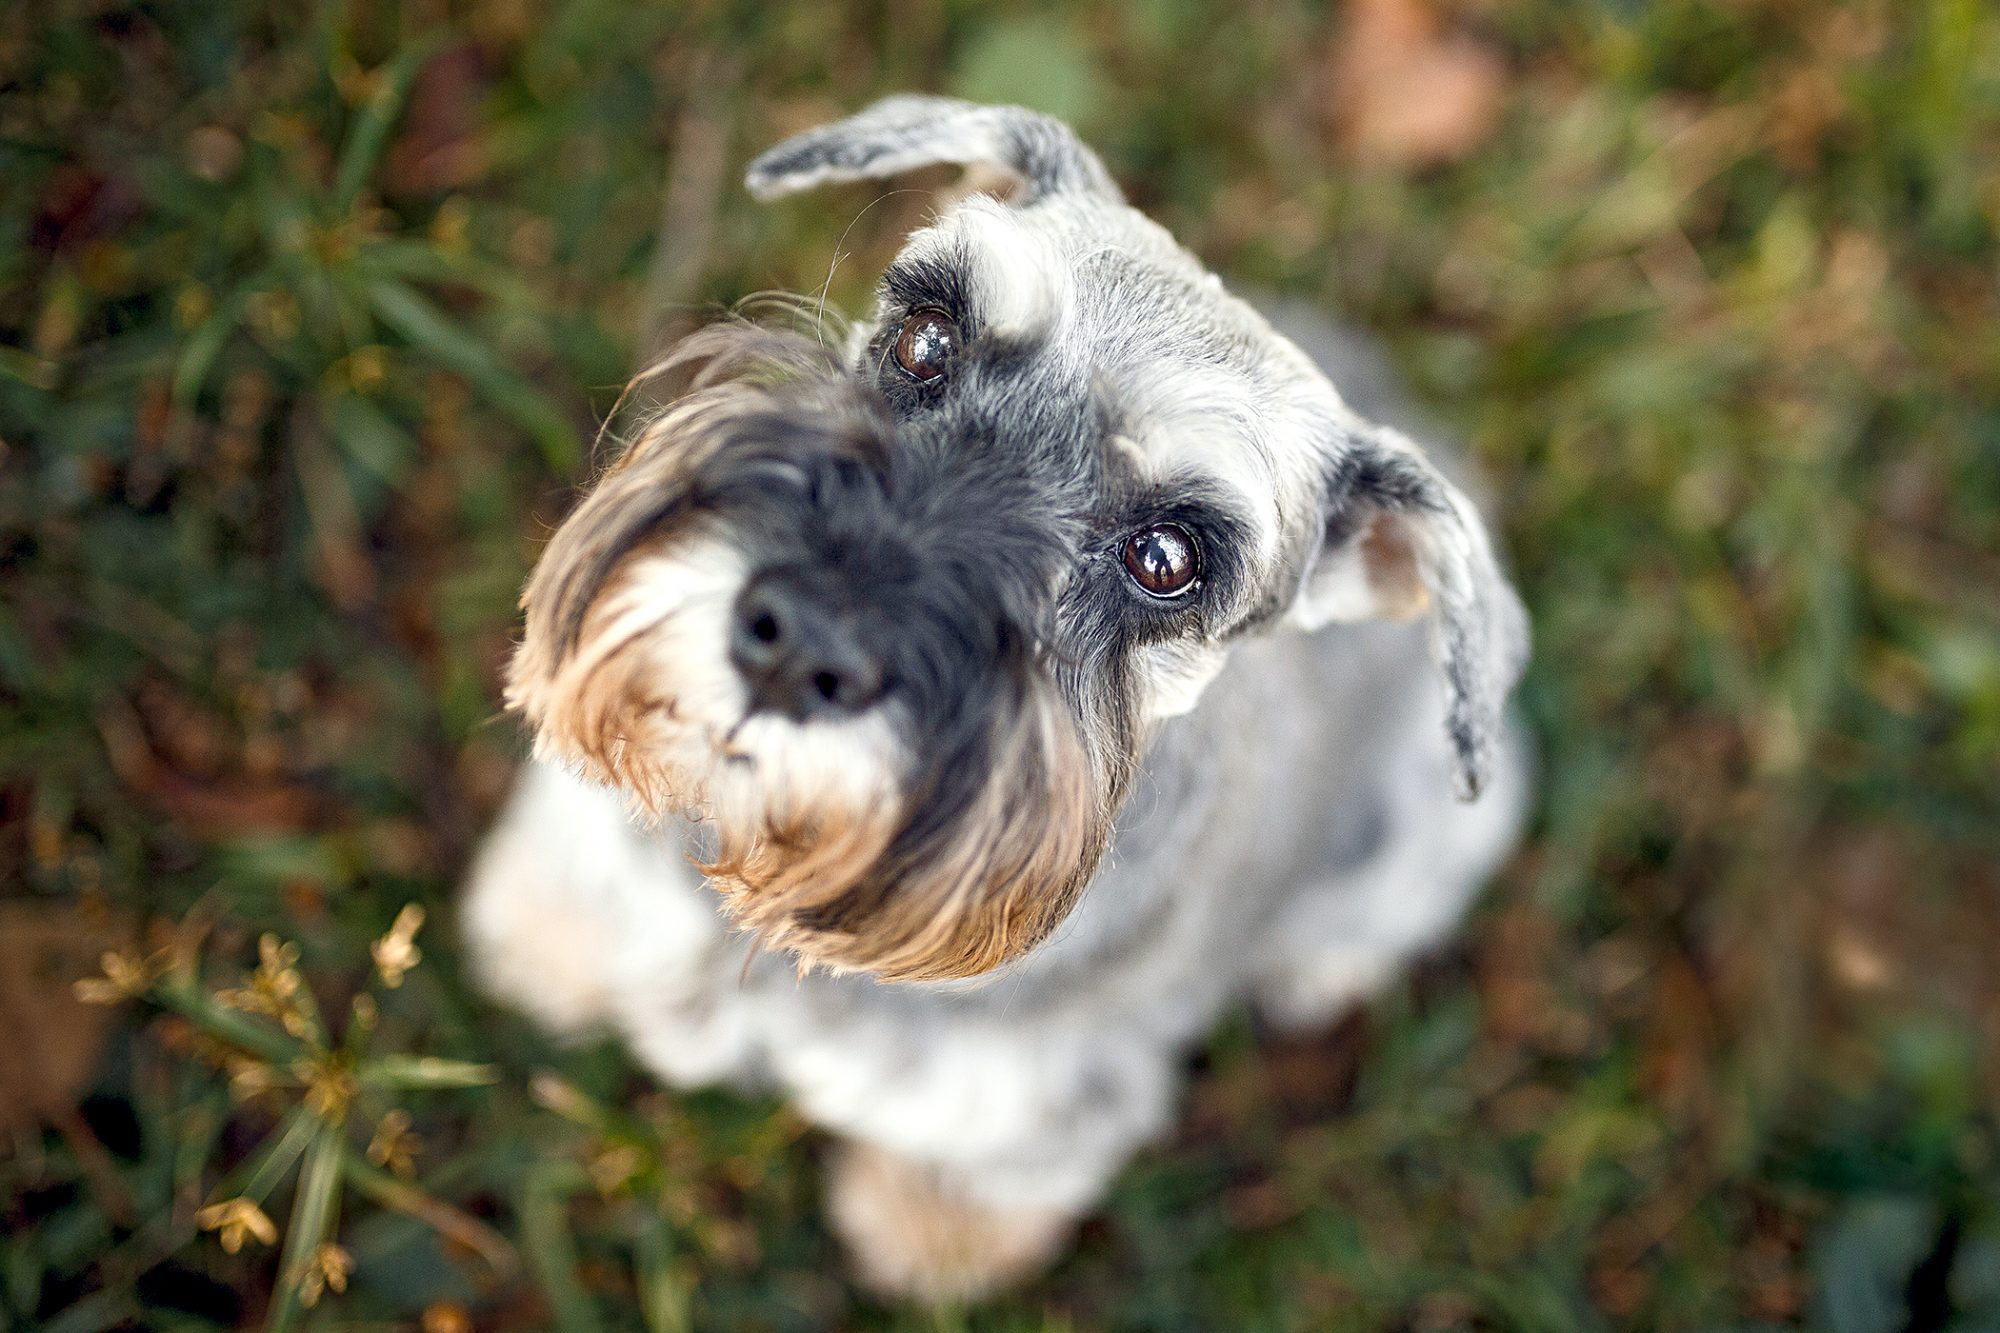 closeup from above of a standard schnauzer sitting in grass looking up